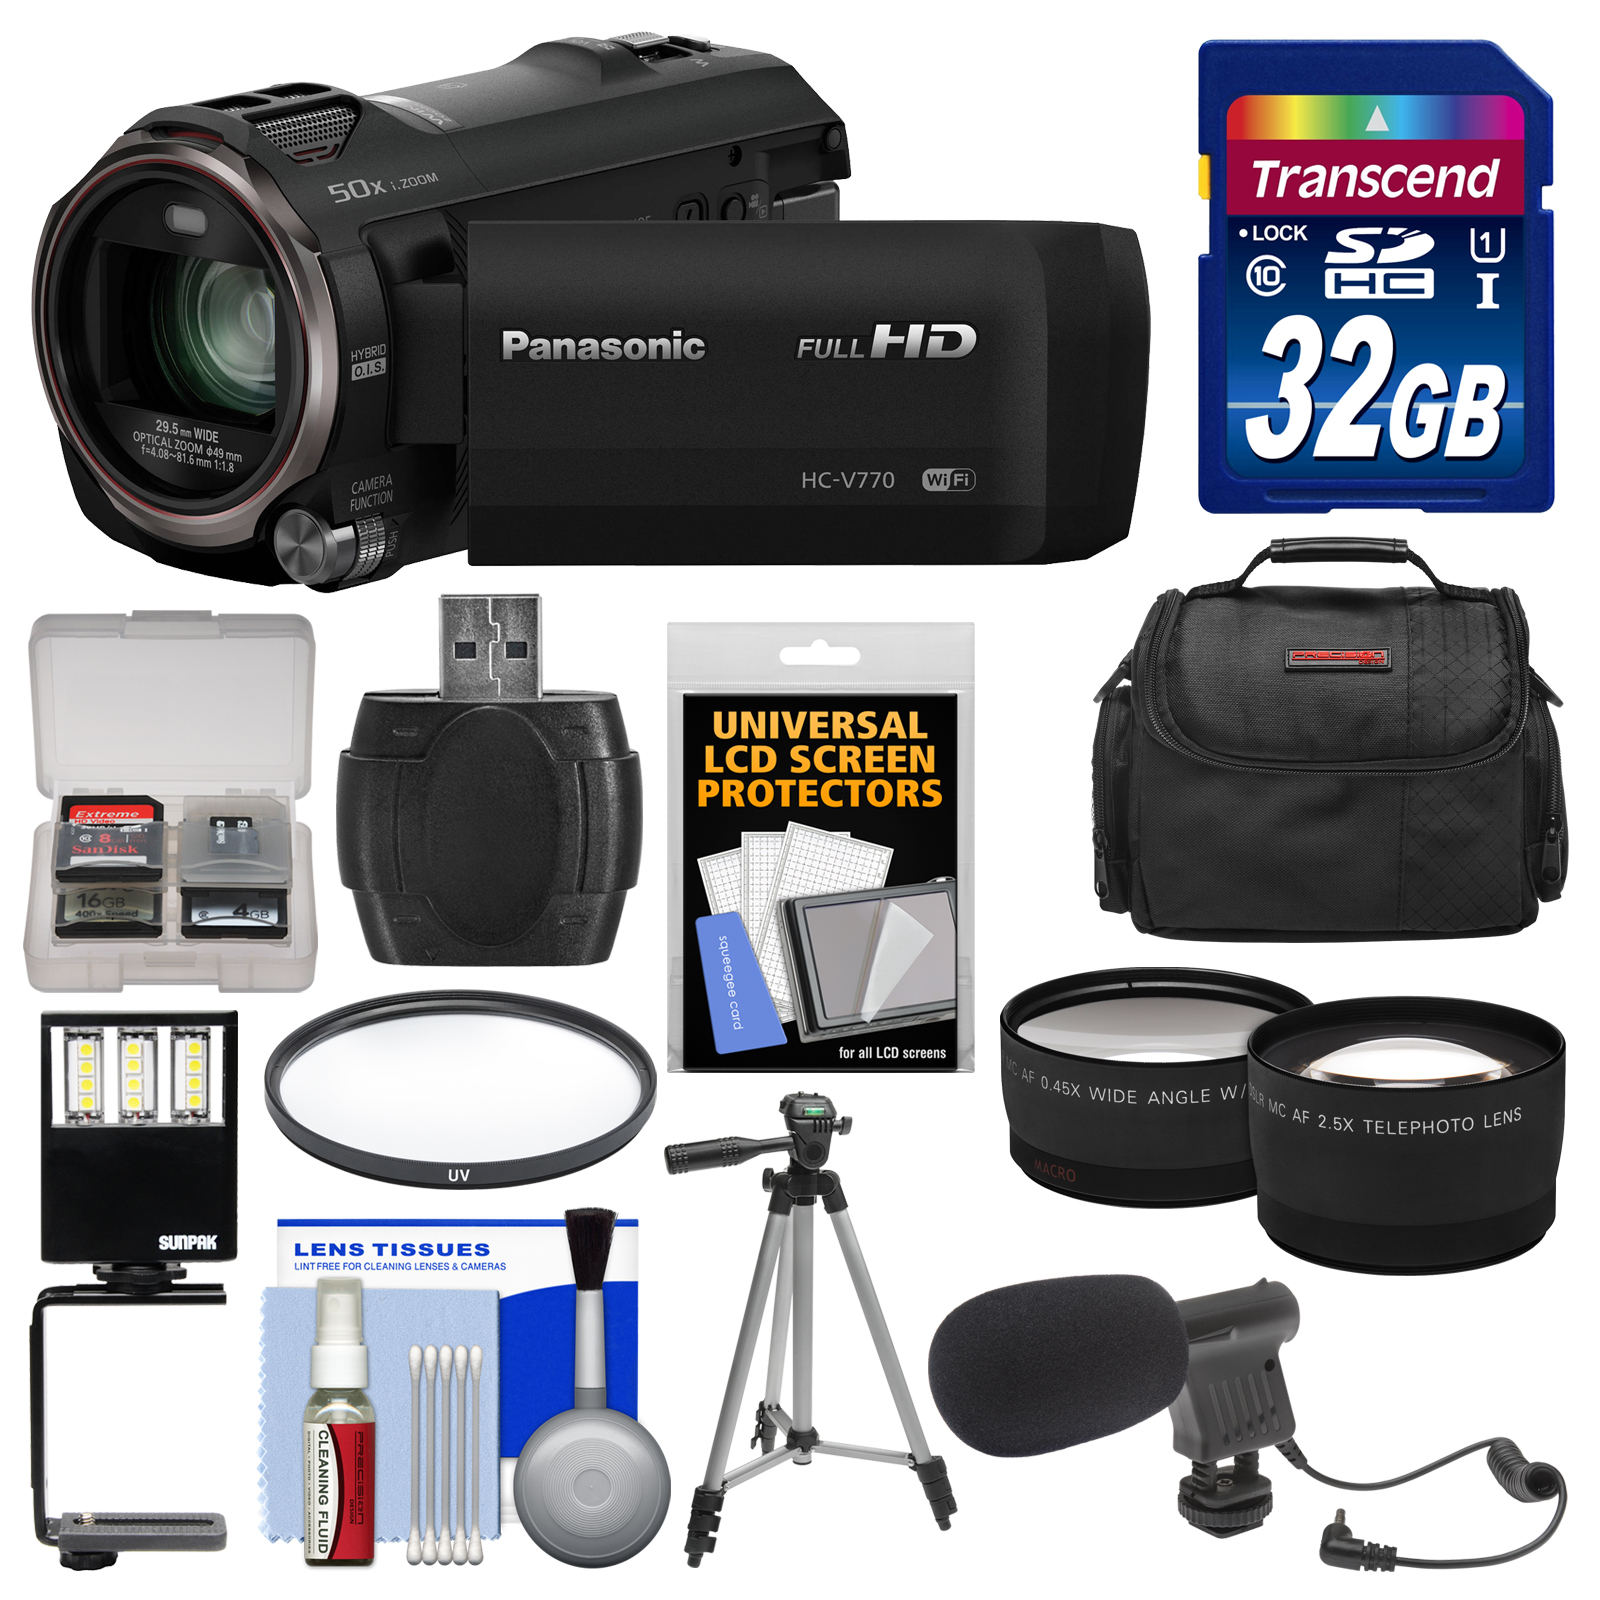 Panasonic HC-V770 Wireless Smartphone Twin Wi-Fi HD Video Camera Camcorder   32GB Card   Case   LED Light   Microphone   Tripod   Tele/Wide Lens Kit